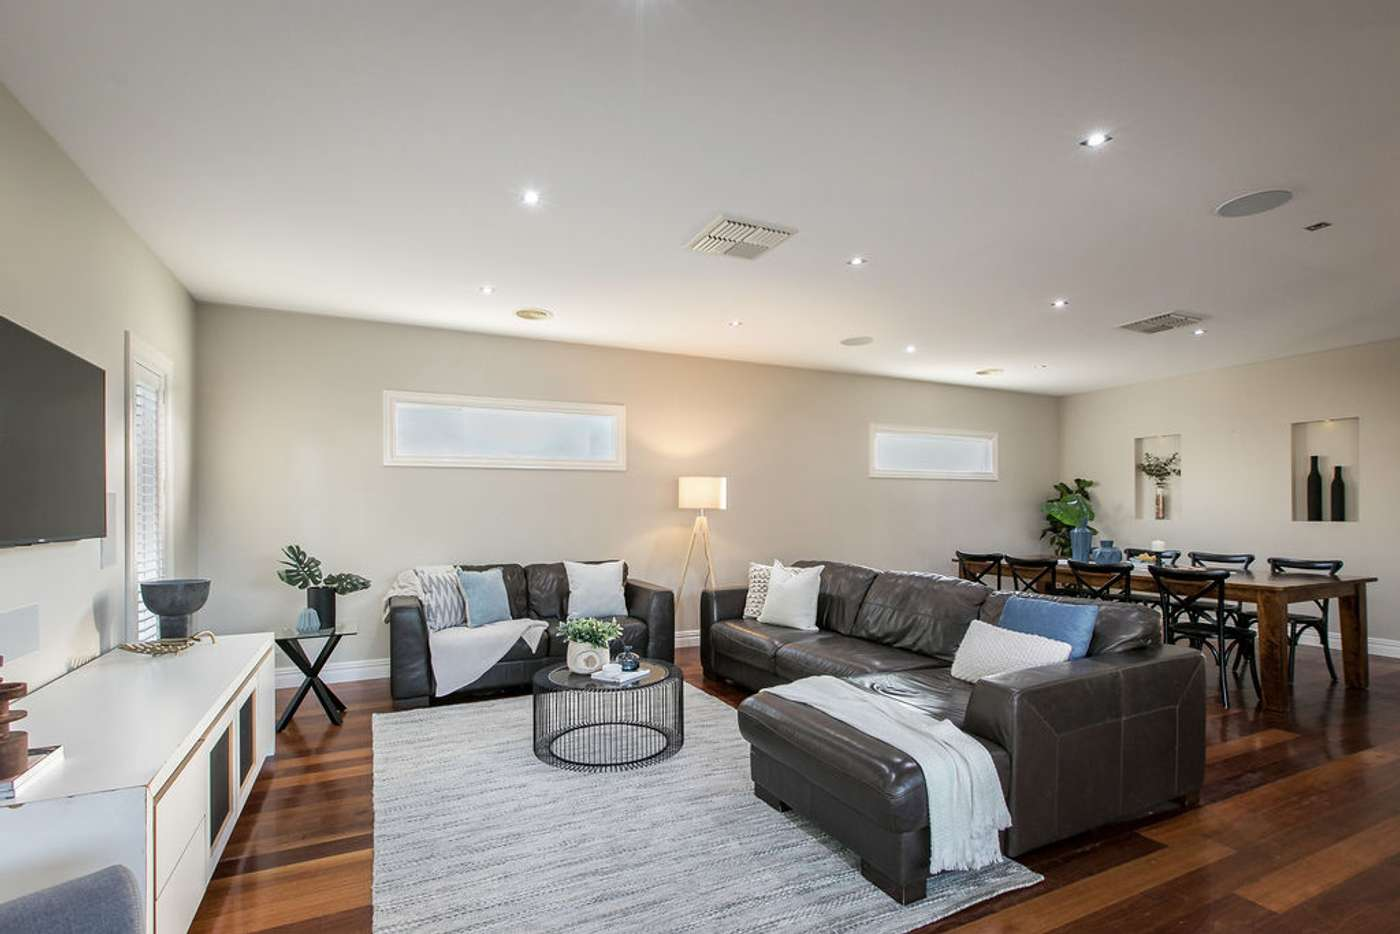 Fifth view of Homely house listing, 62 William Street, Wodonga VIC 3690